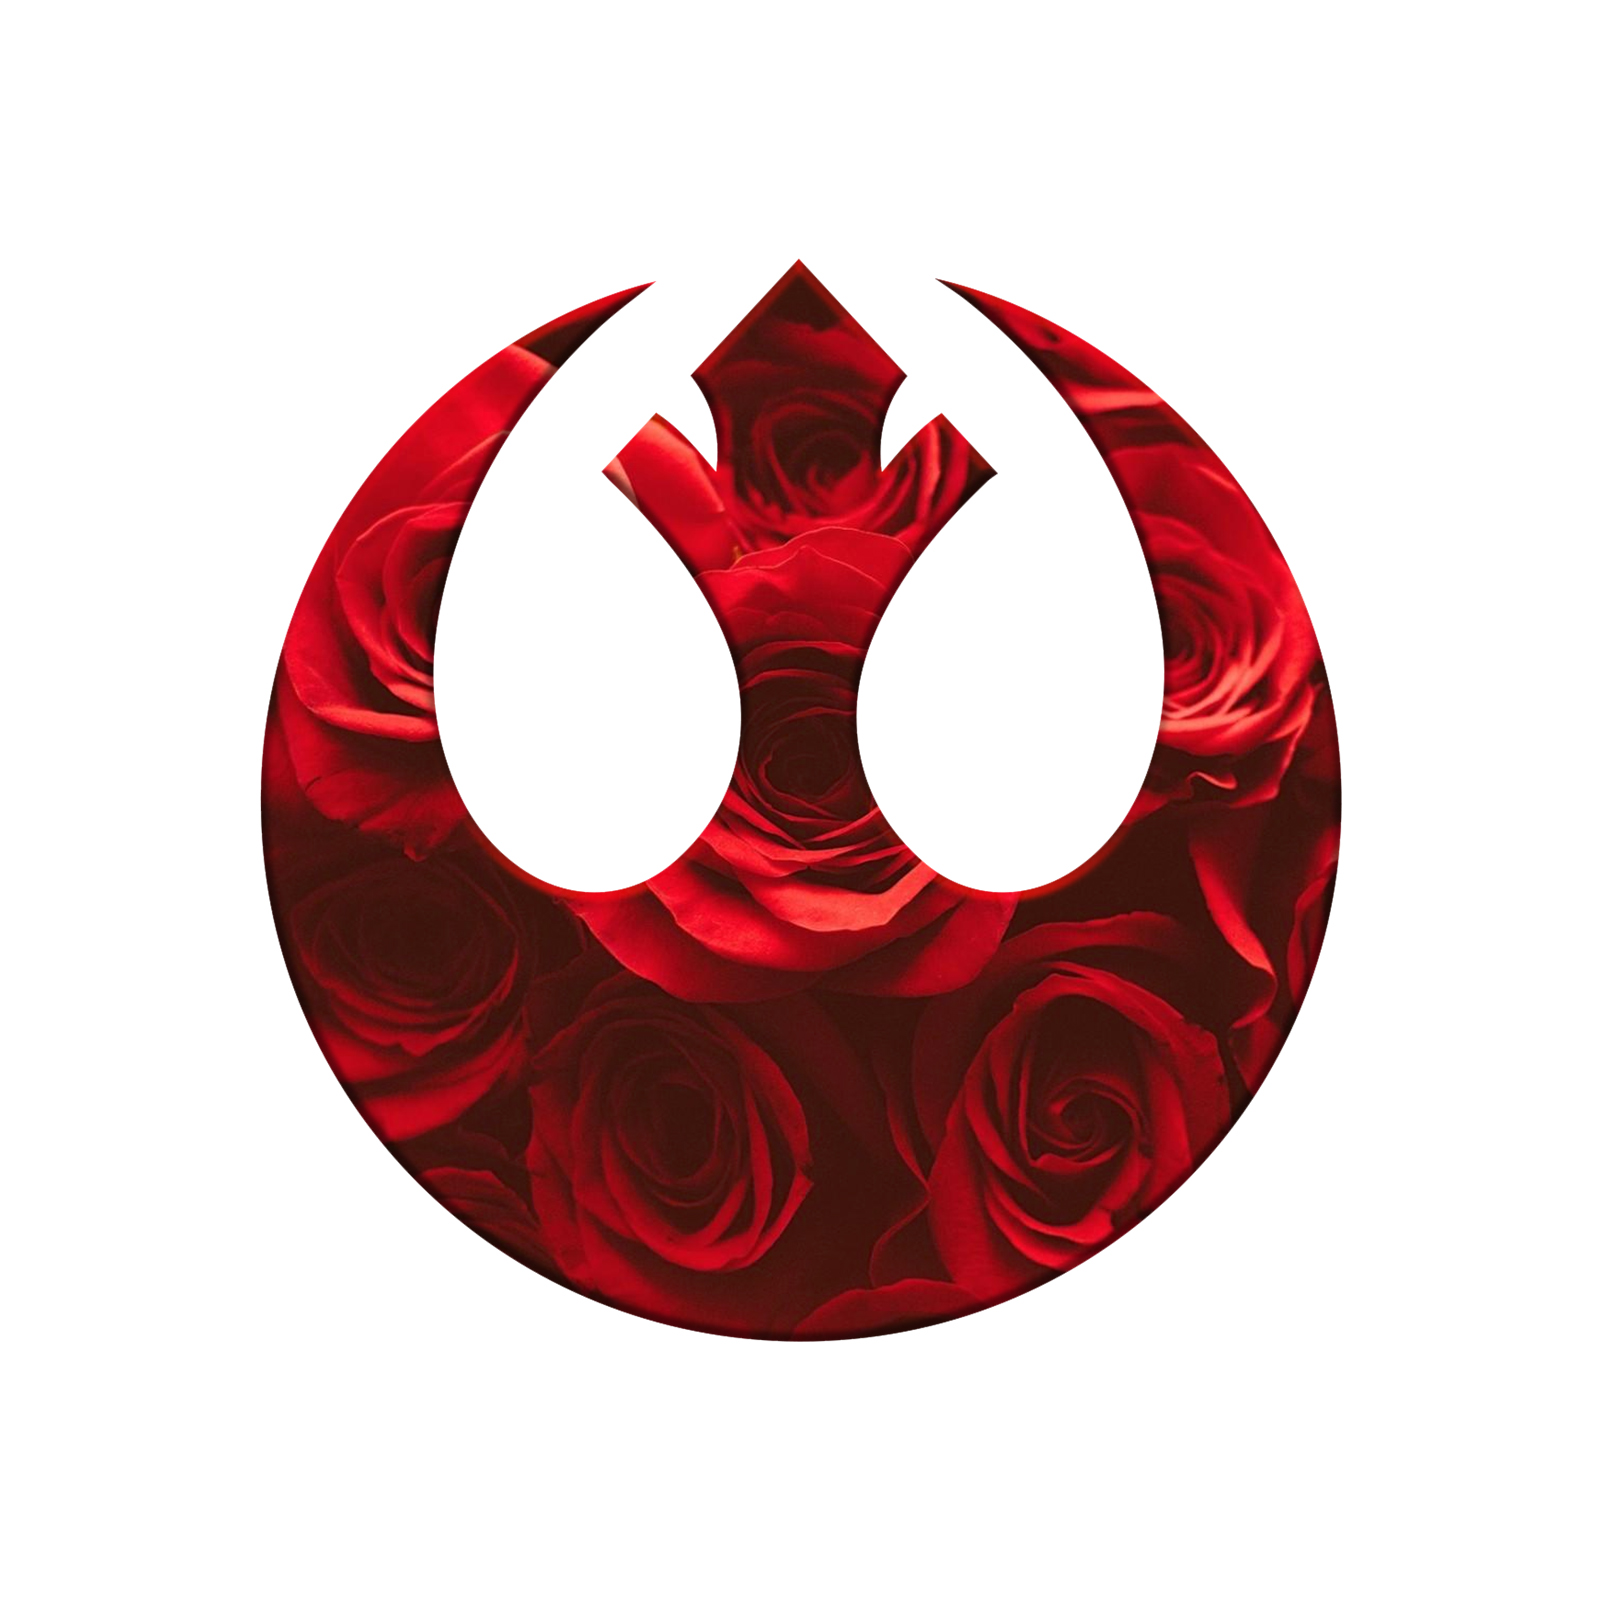 Red Rose Alliance Symbol Laptop Trackpad Sticker 3 Tall X 3 Wide